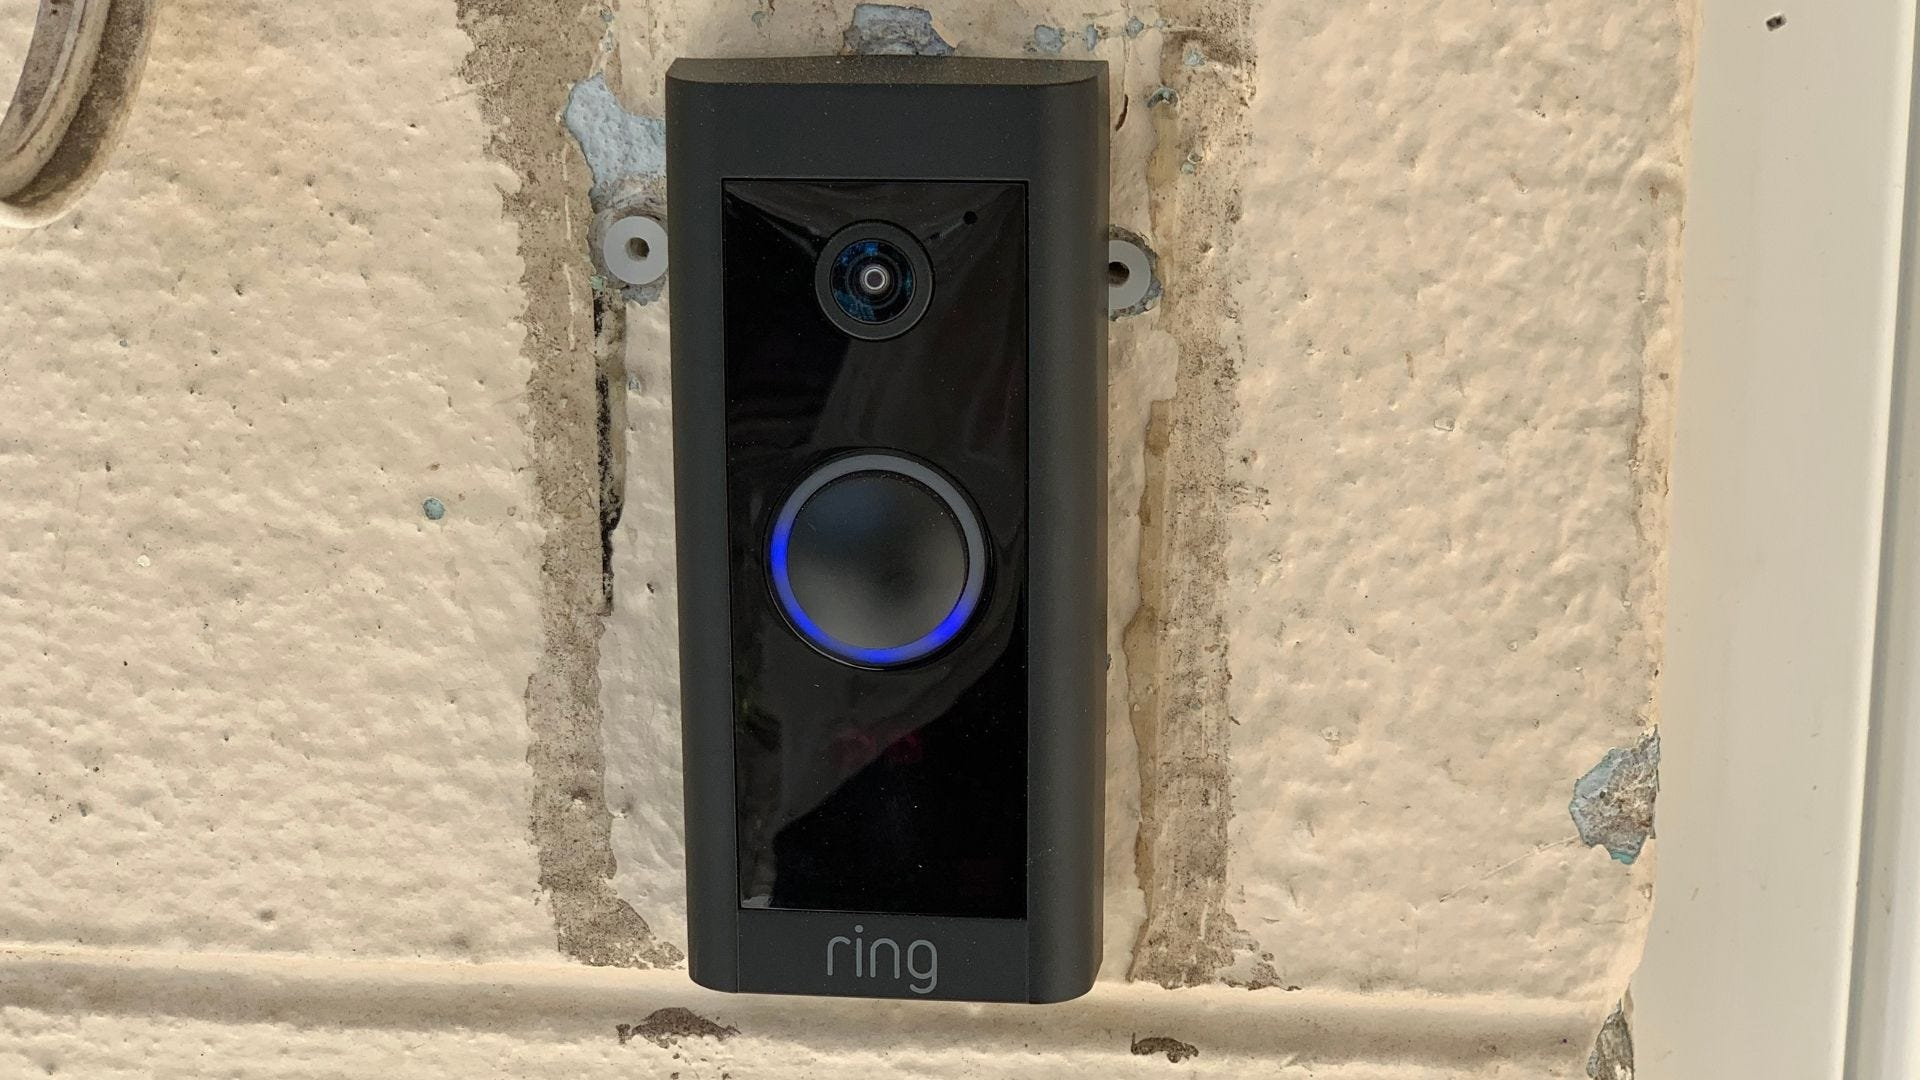 The popular Ring video doorbell is on sale ahead of Prime Day 2021—and comes with a bonus